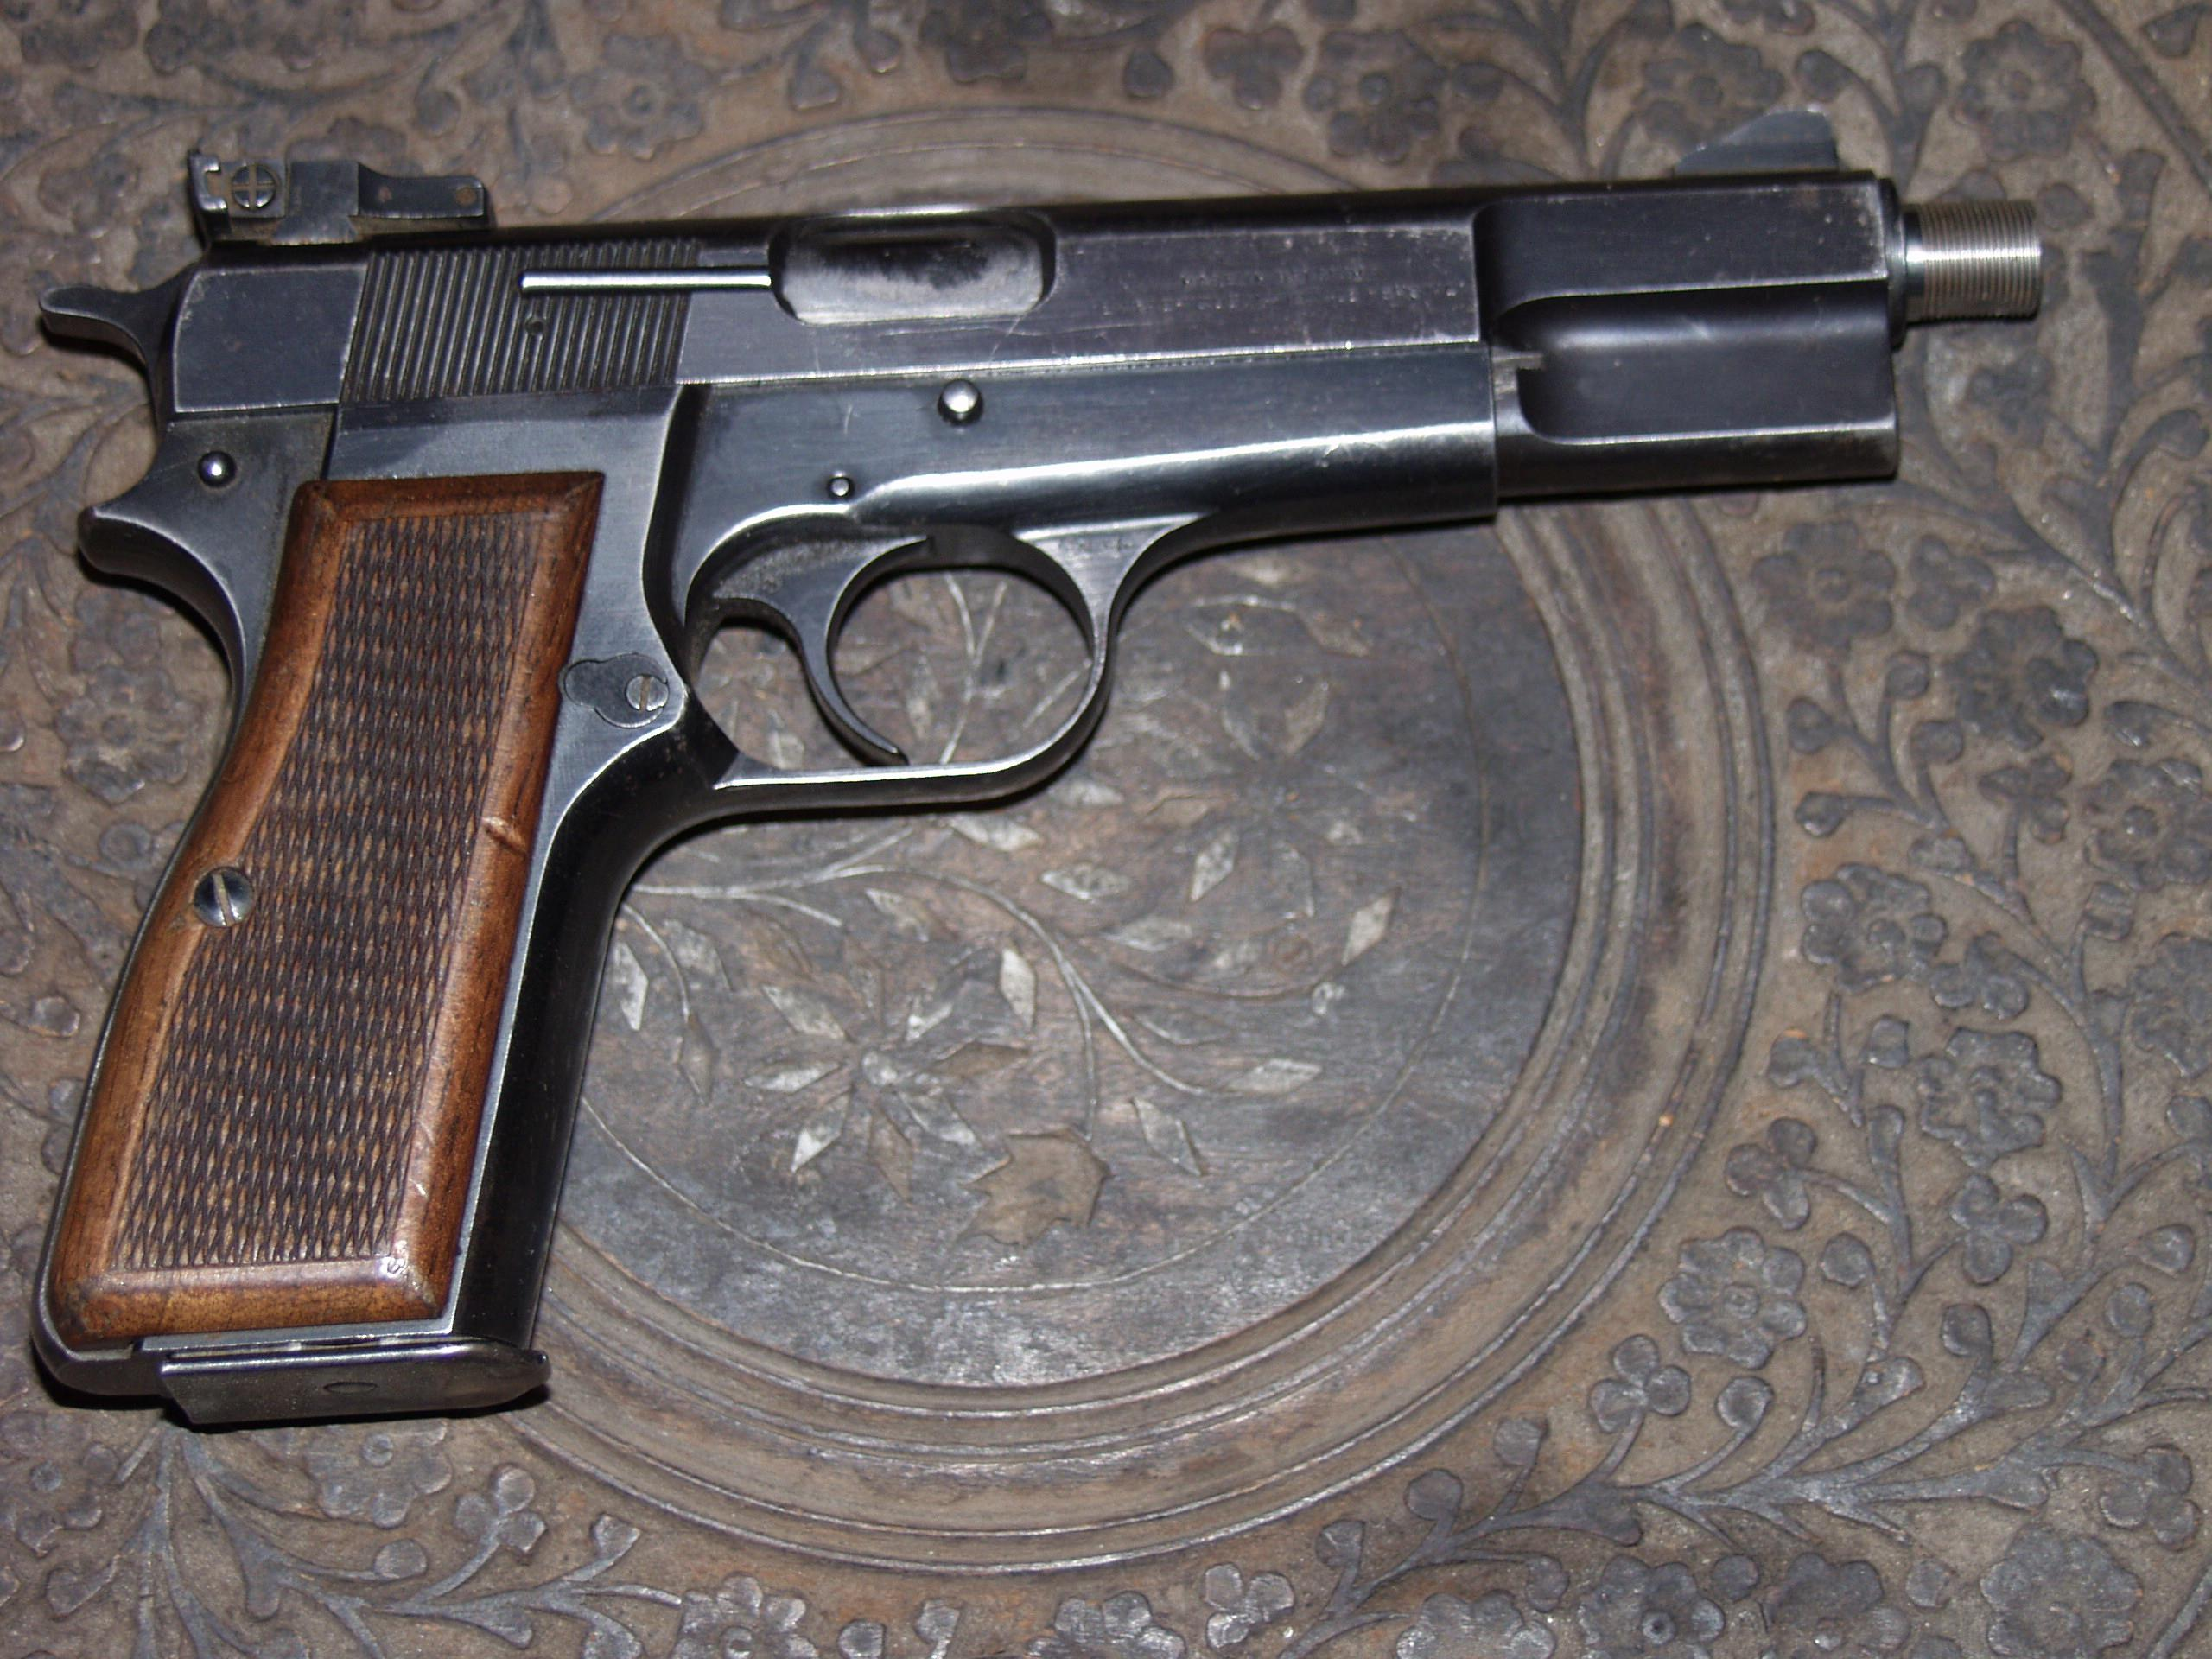 BROWNING HI-POWER  Guns > Pistols > Browning Pistols > Hi Power